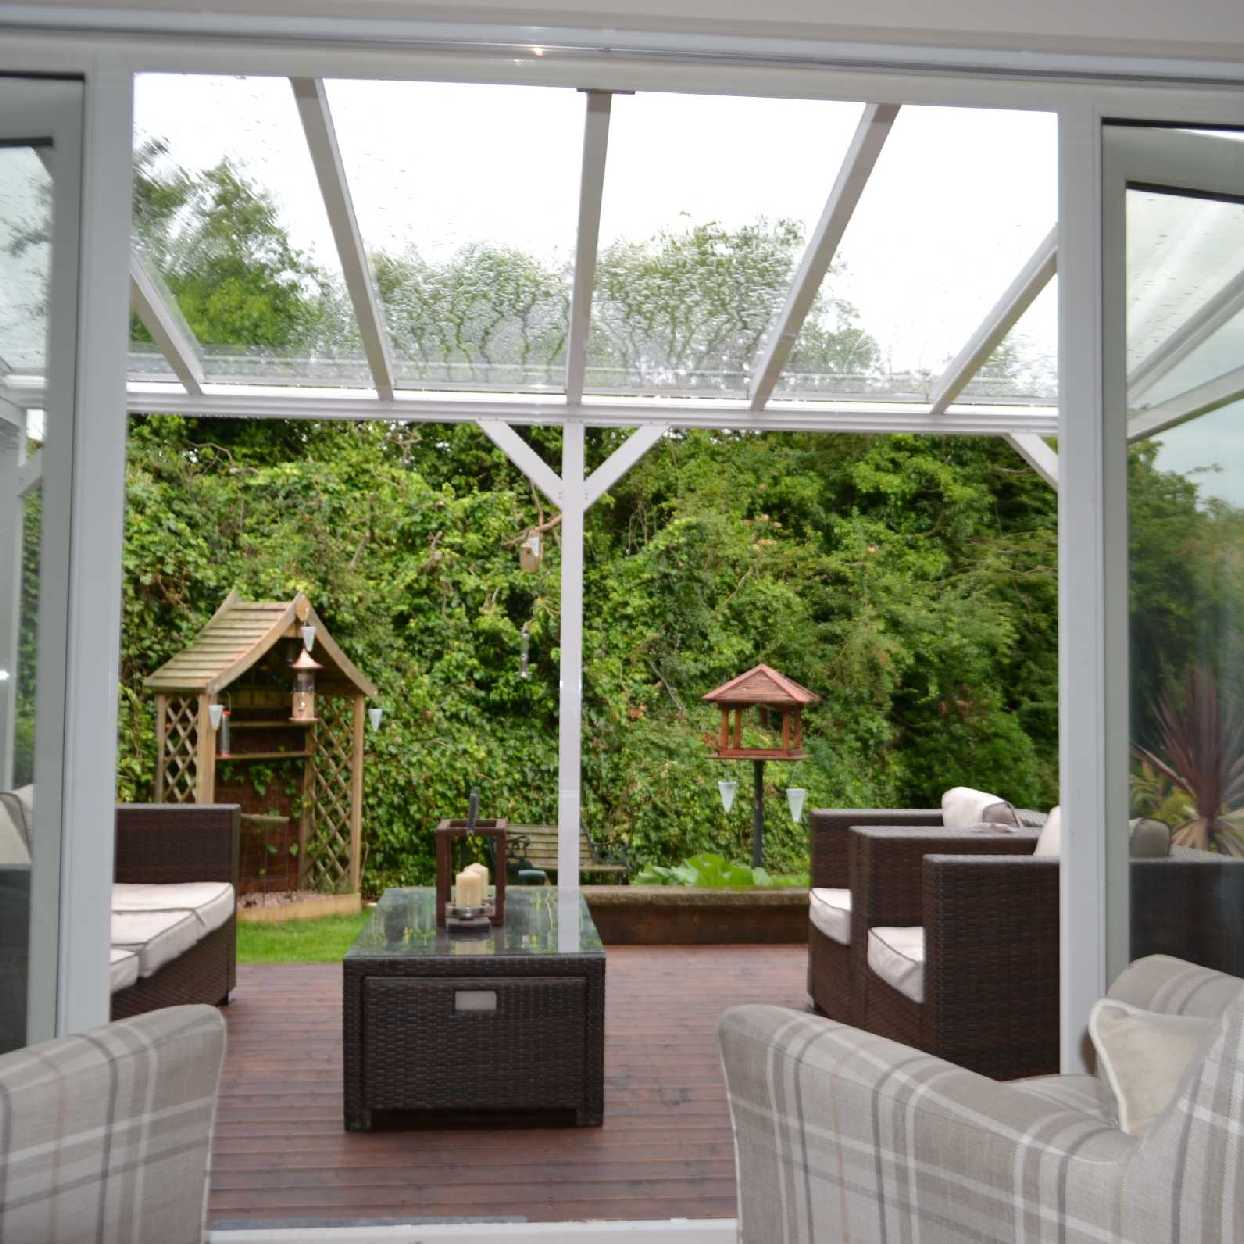 Great selection of Omega Smart Lean-To Canopy UNGLAZED for 6mm Glazing - 2.8m (W) x 1.5m (P), (2) Supporting Posts